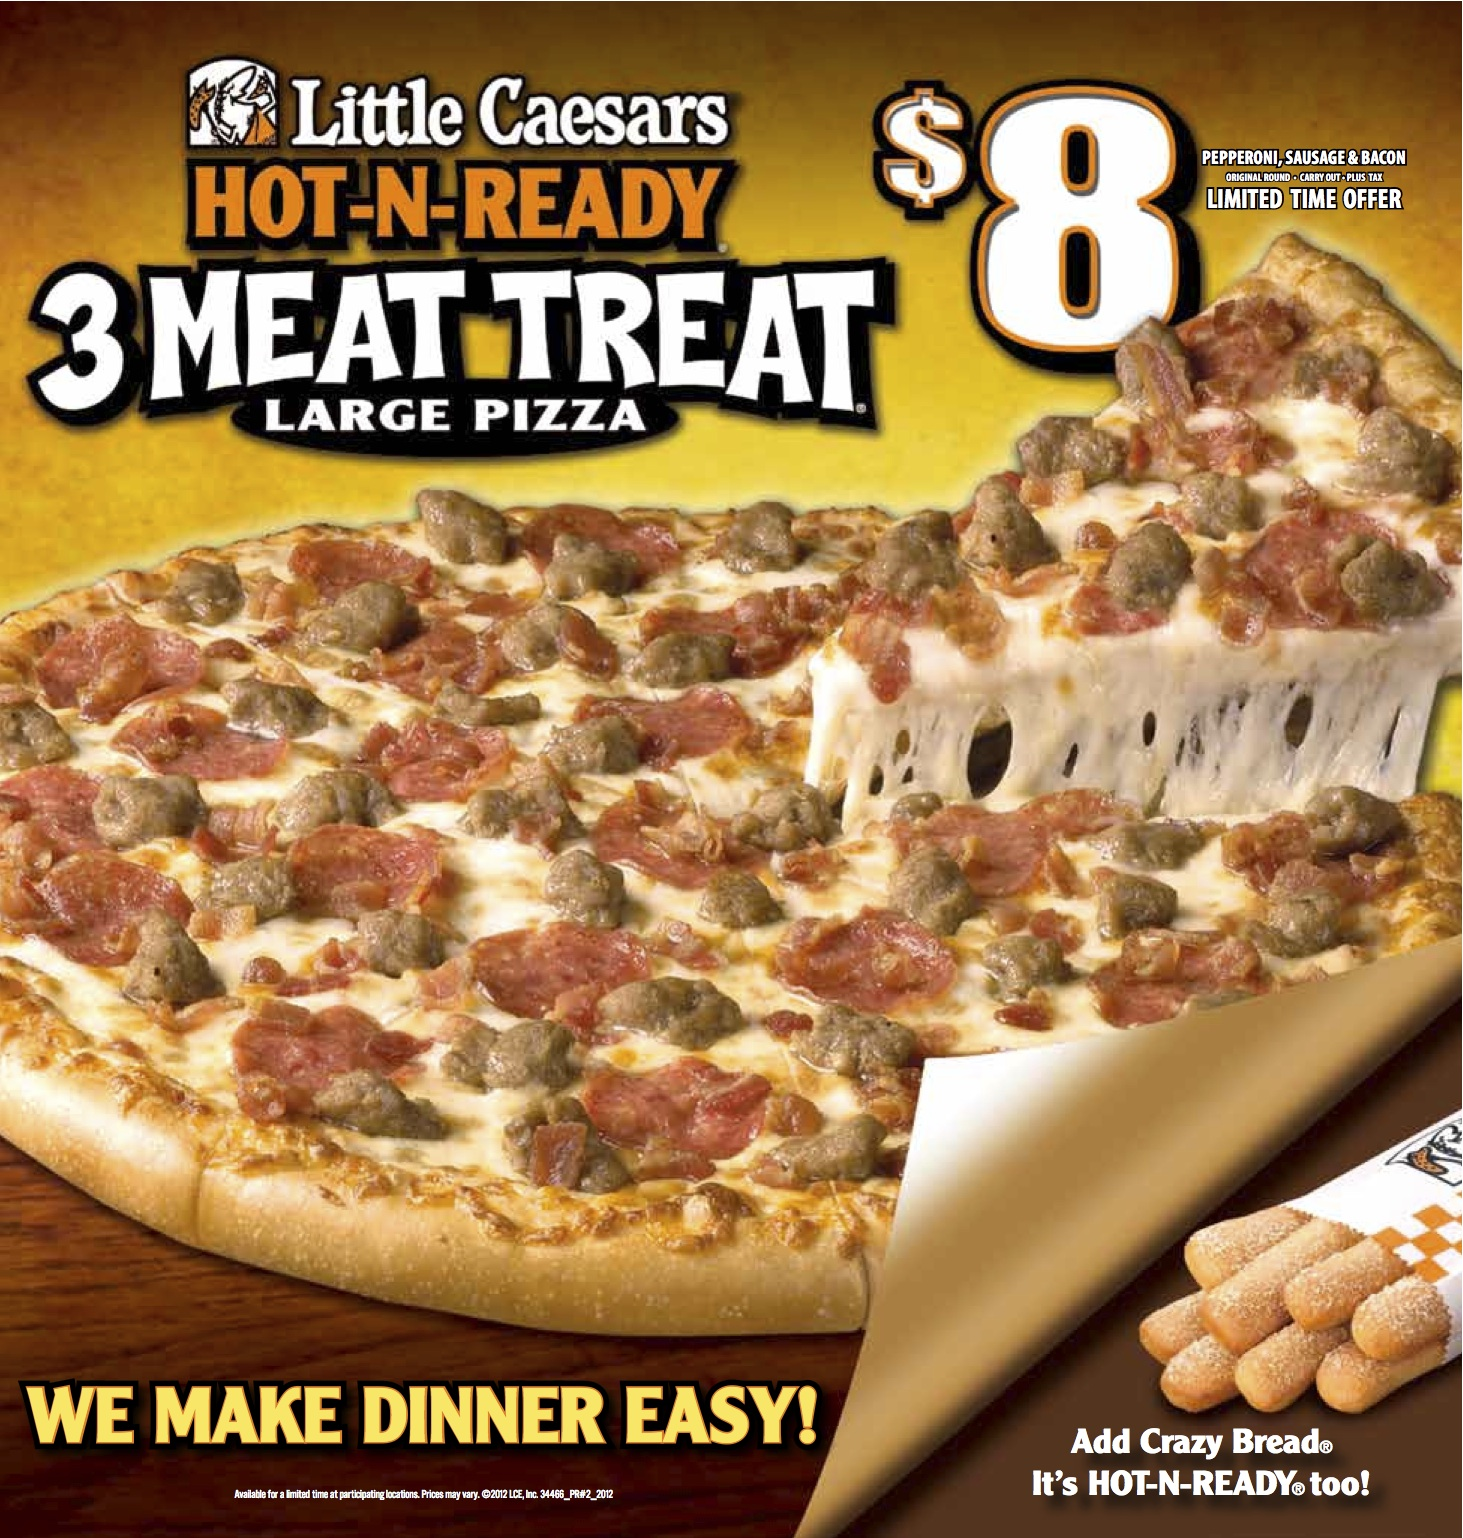 Little Caesars HOT-N-READY Promotions & Deals + Gift Card Giveaway ...